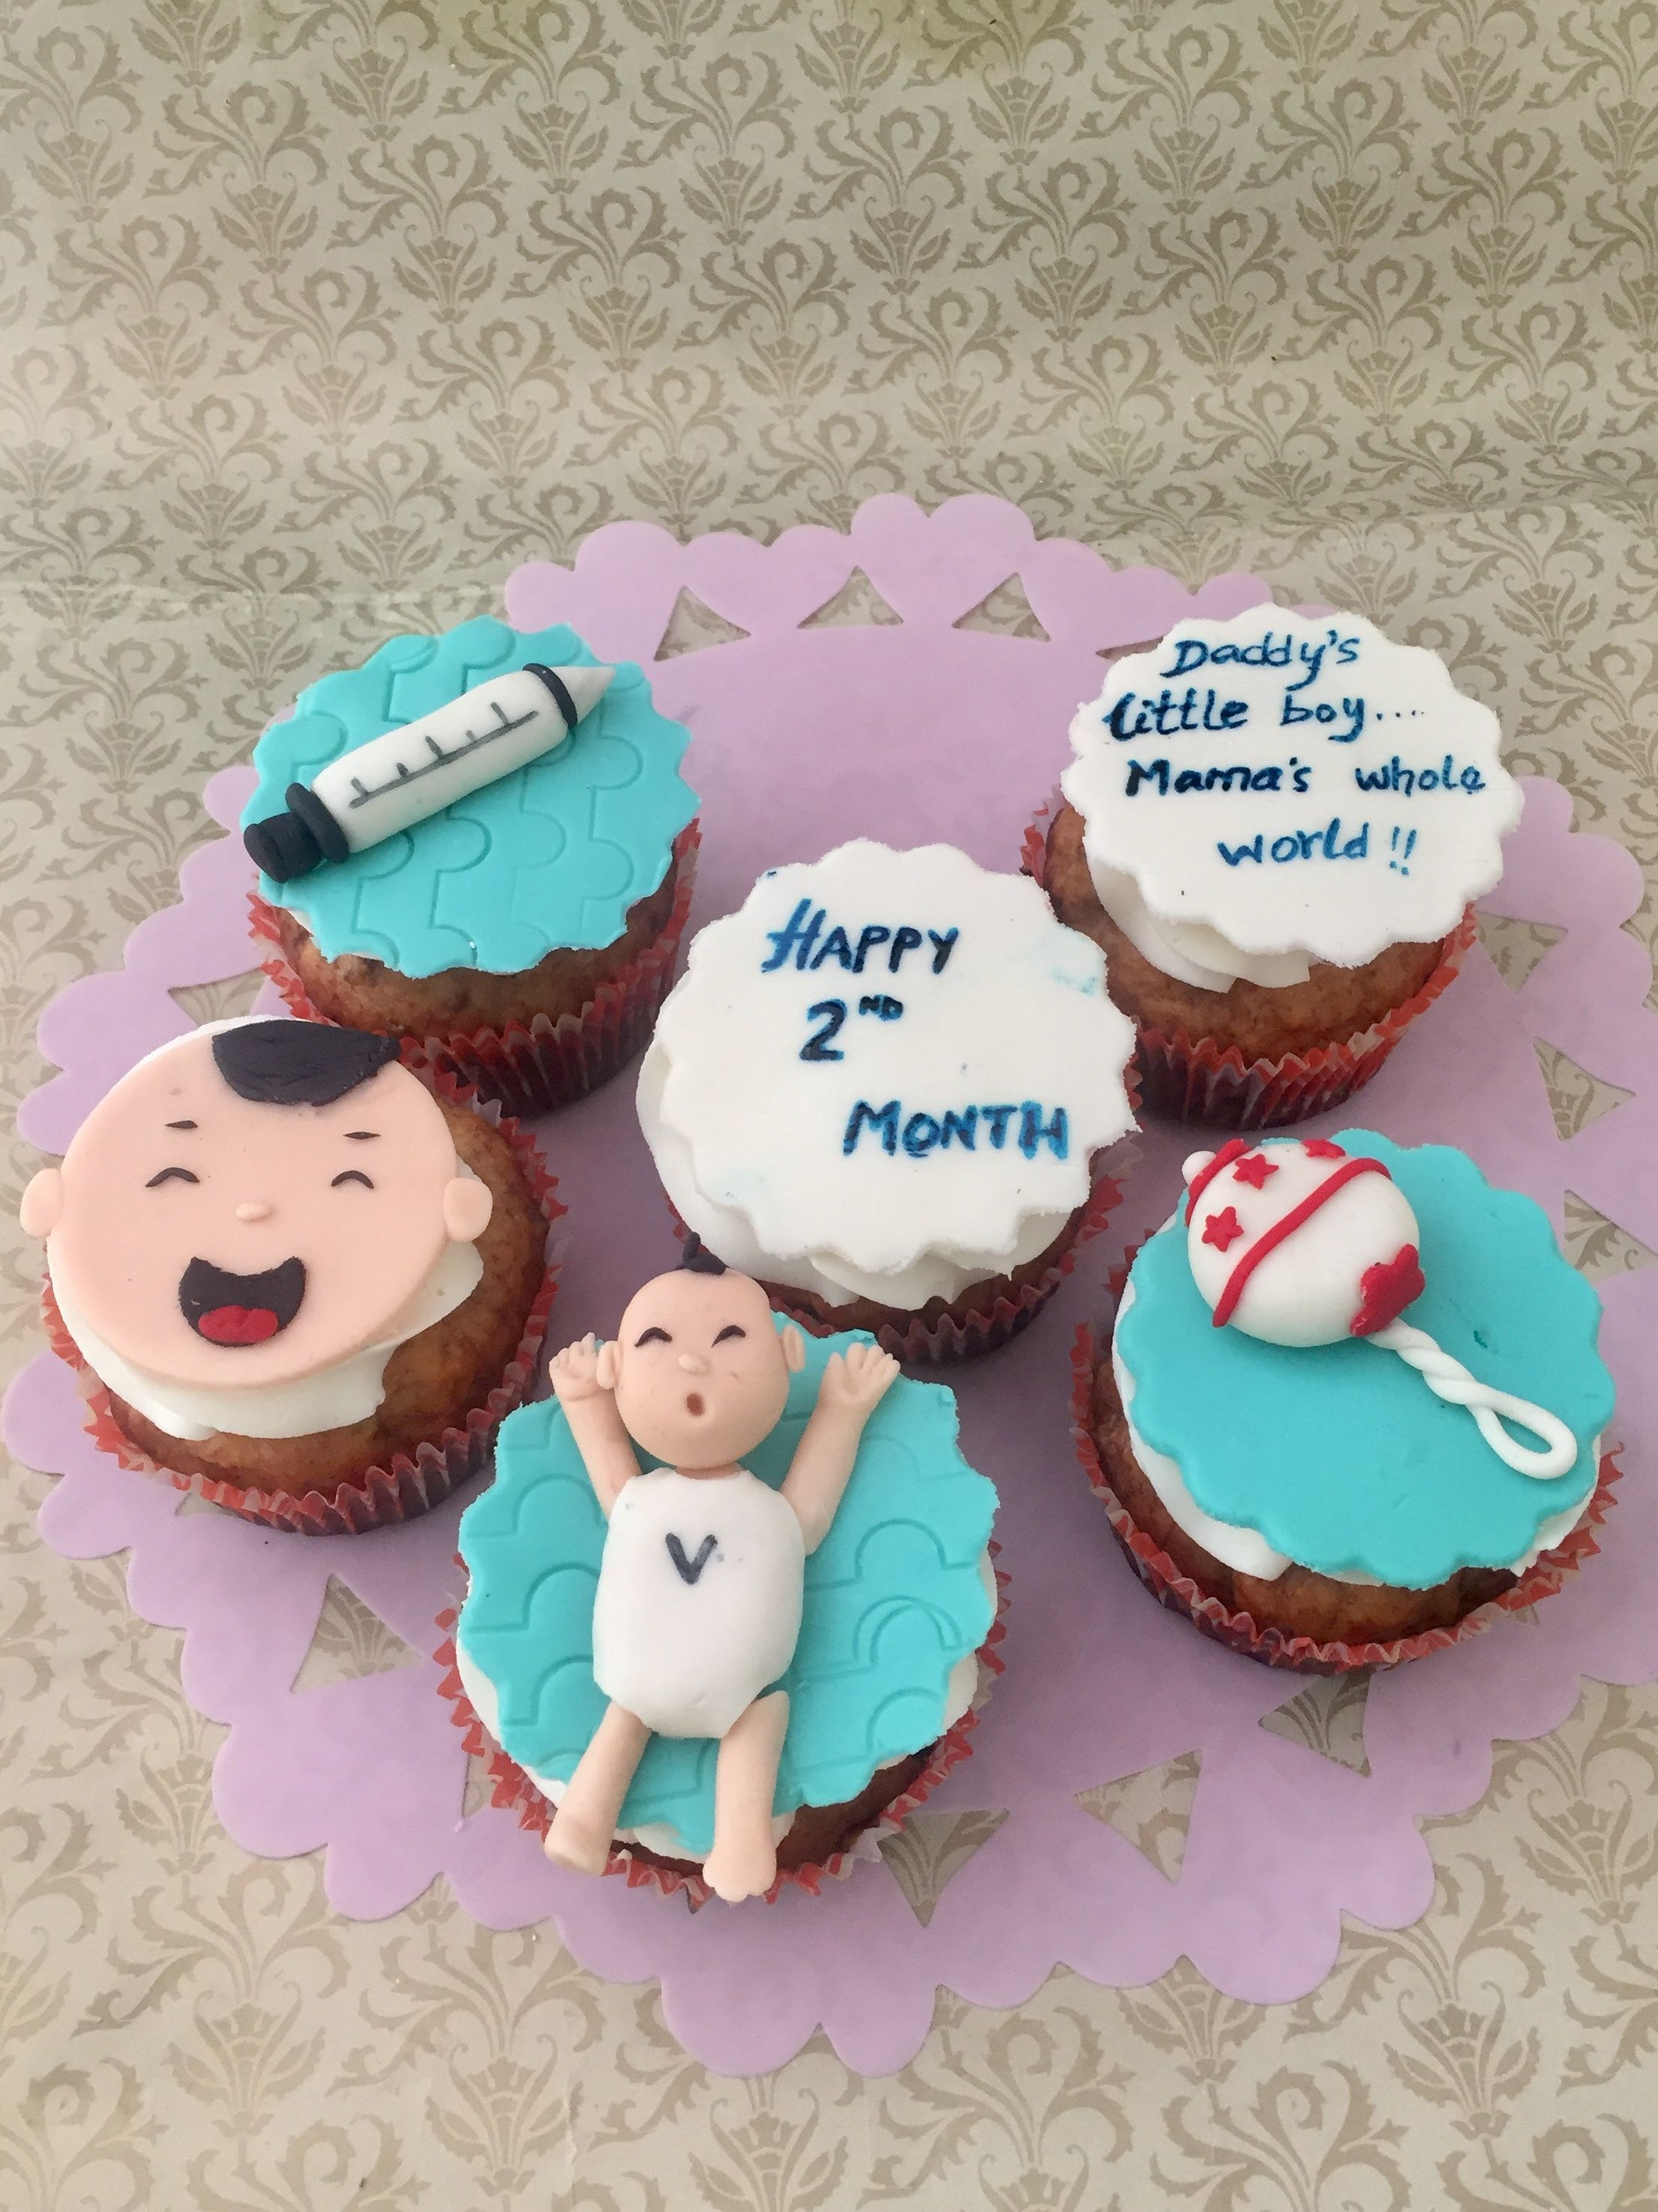 Cupcakes 2 Months Baby Celebration Baby Month By Month Cake Creations Baby Cake